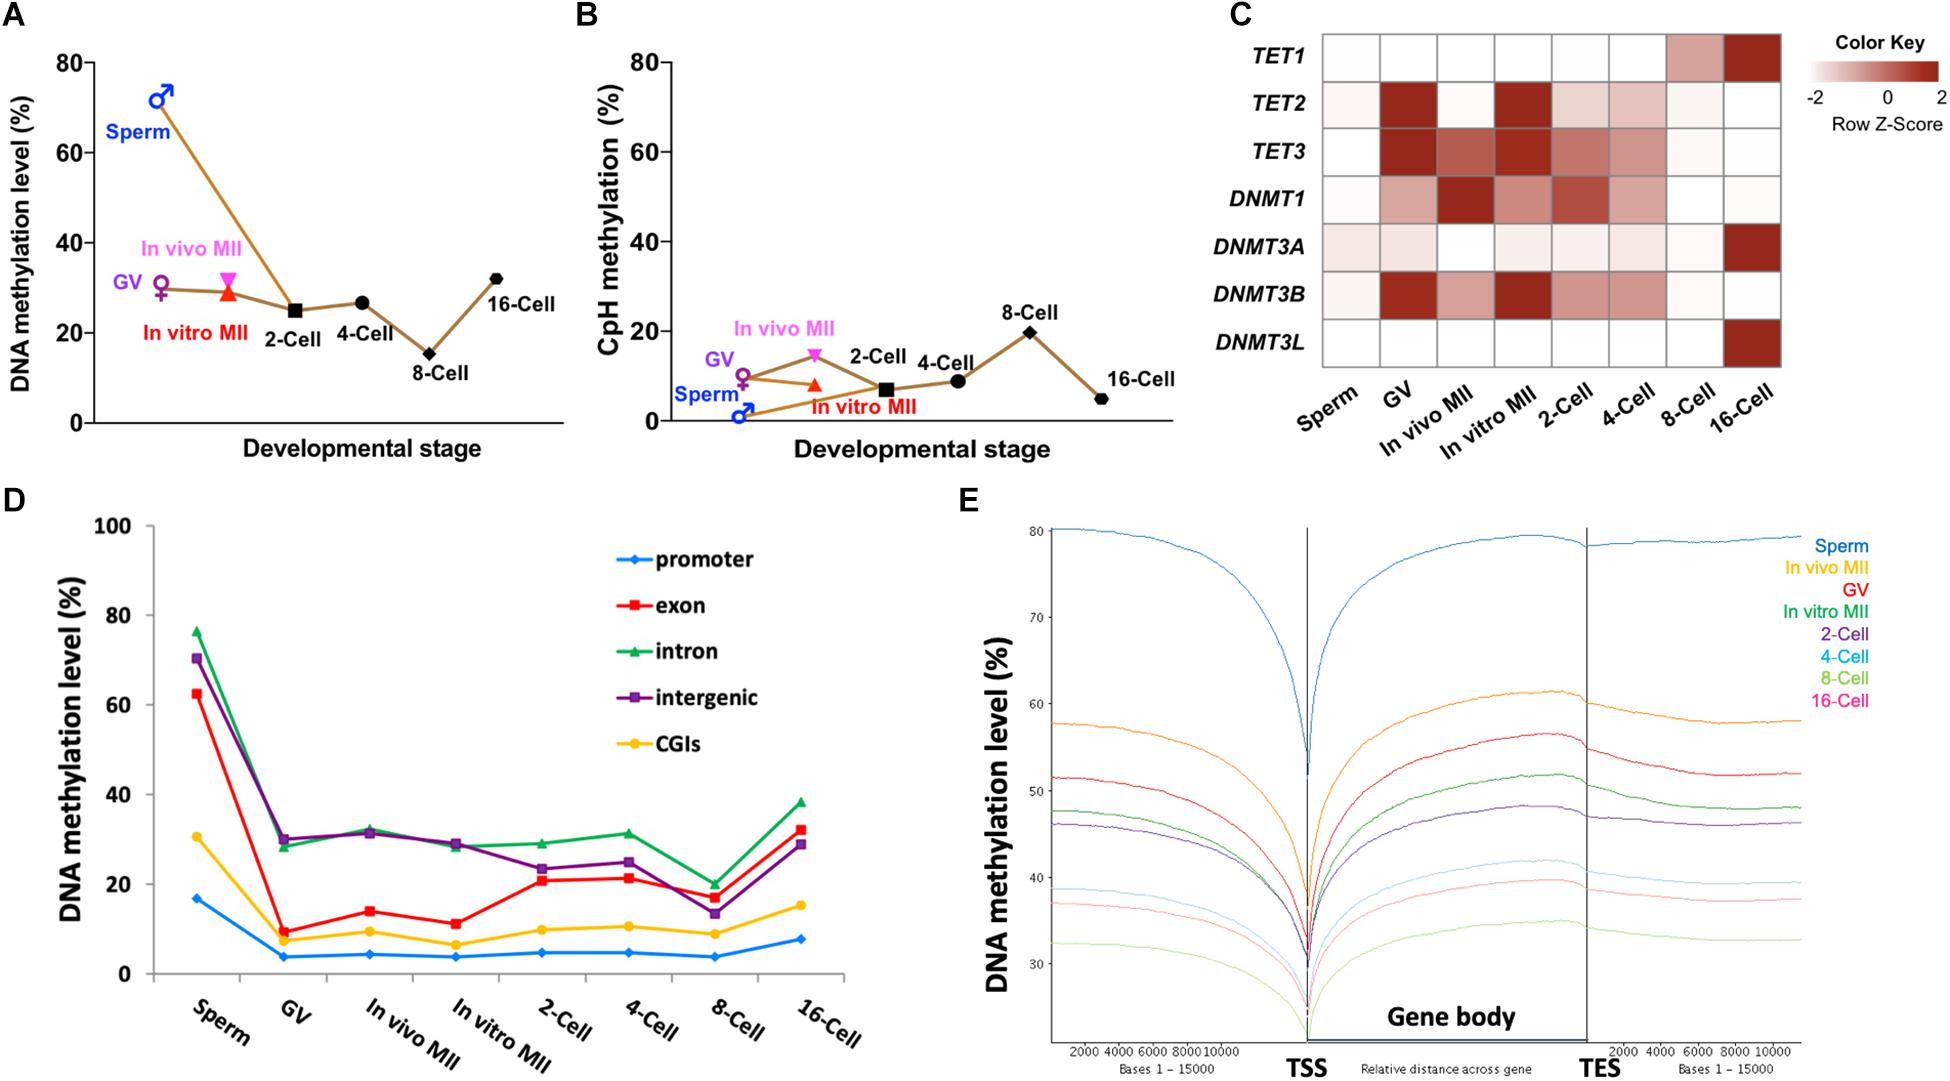 Frontiers | Methylome Dynamics of Bovine Gametes and in vivo Early